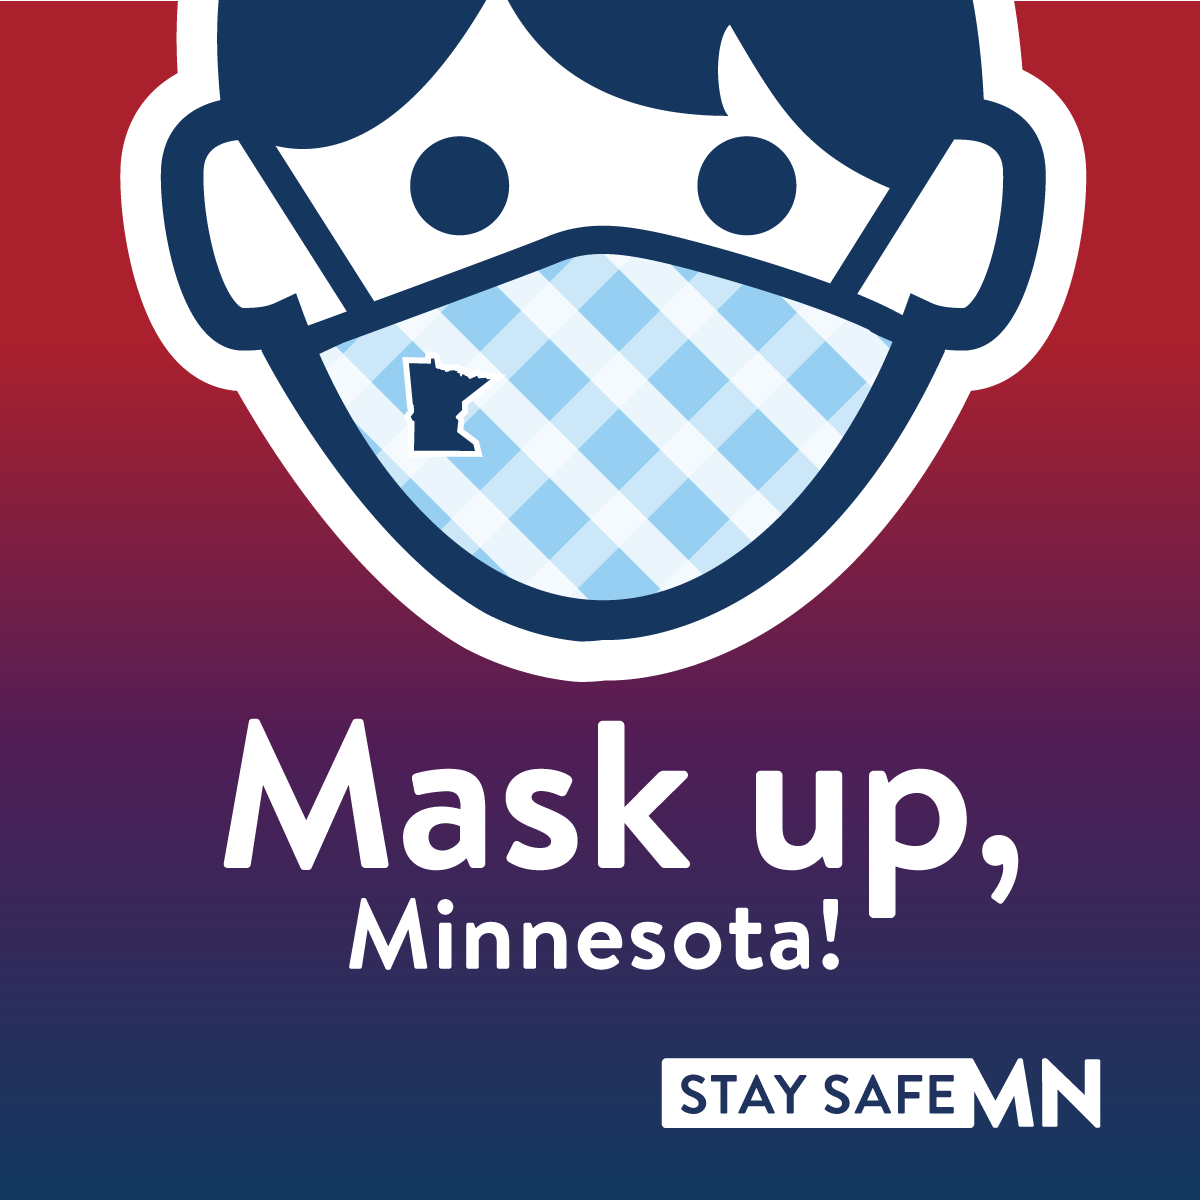 Mask up, Minnesota!